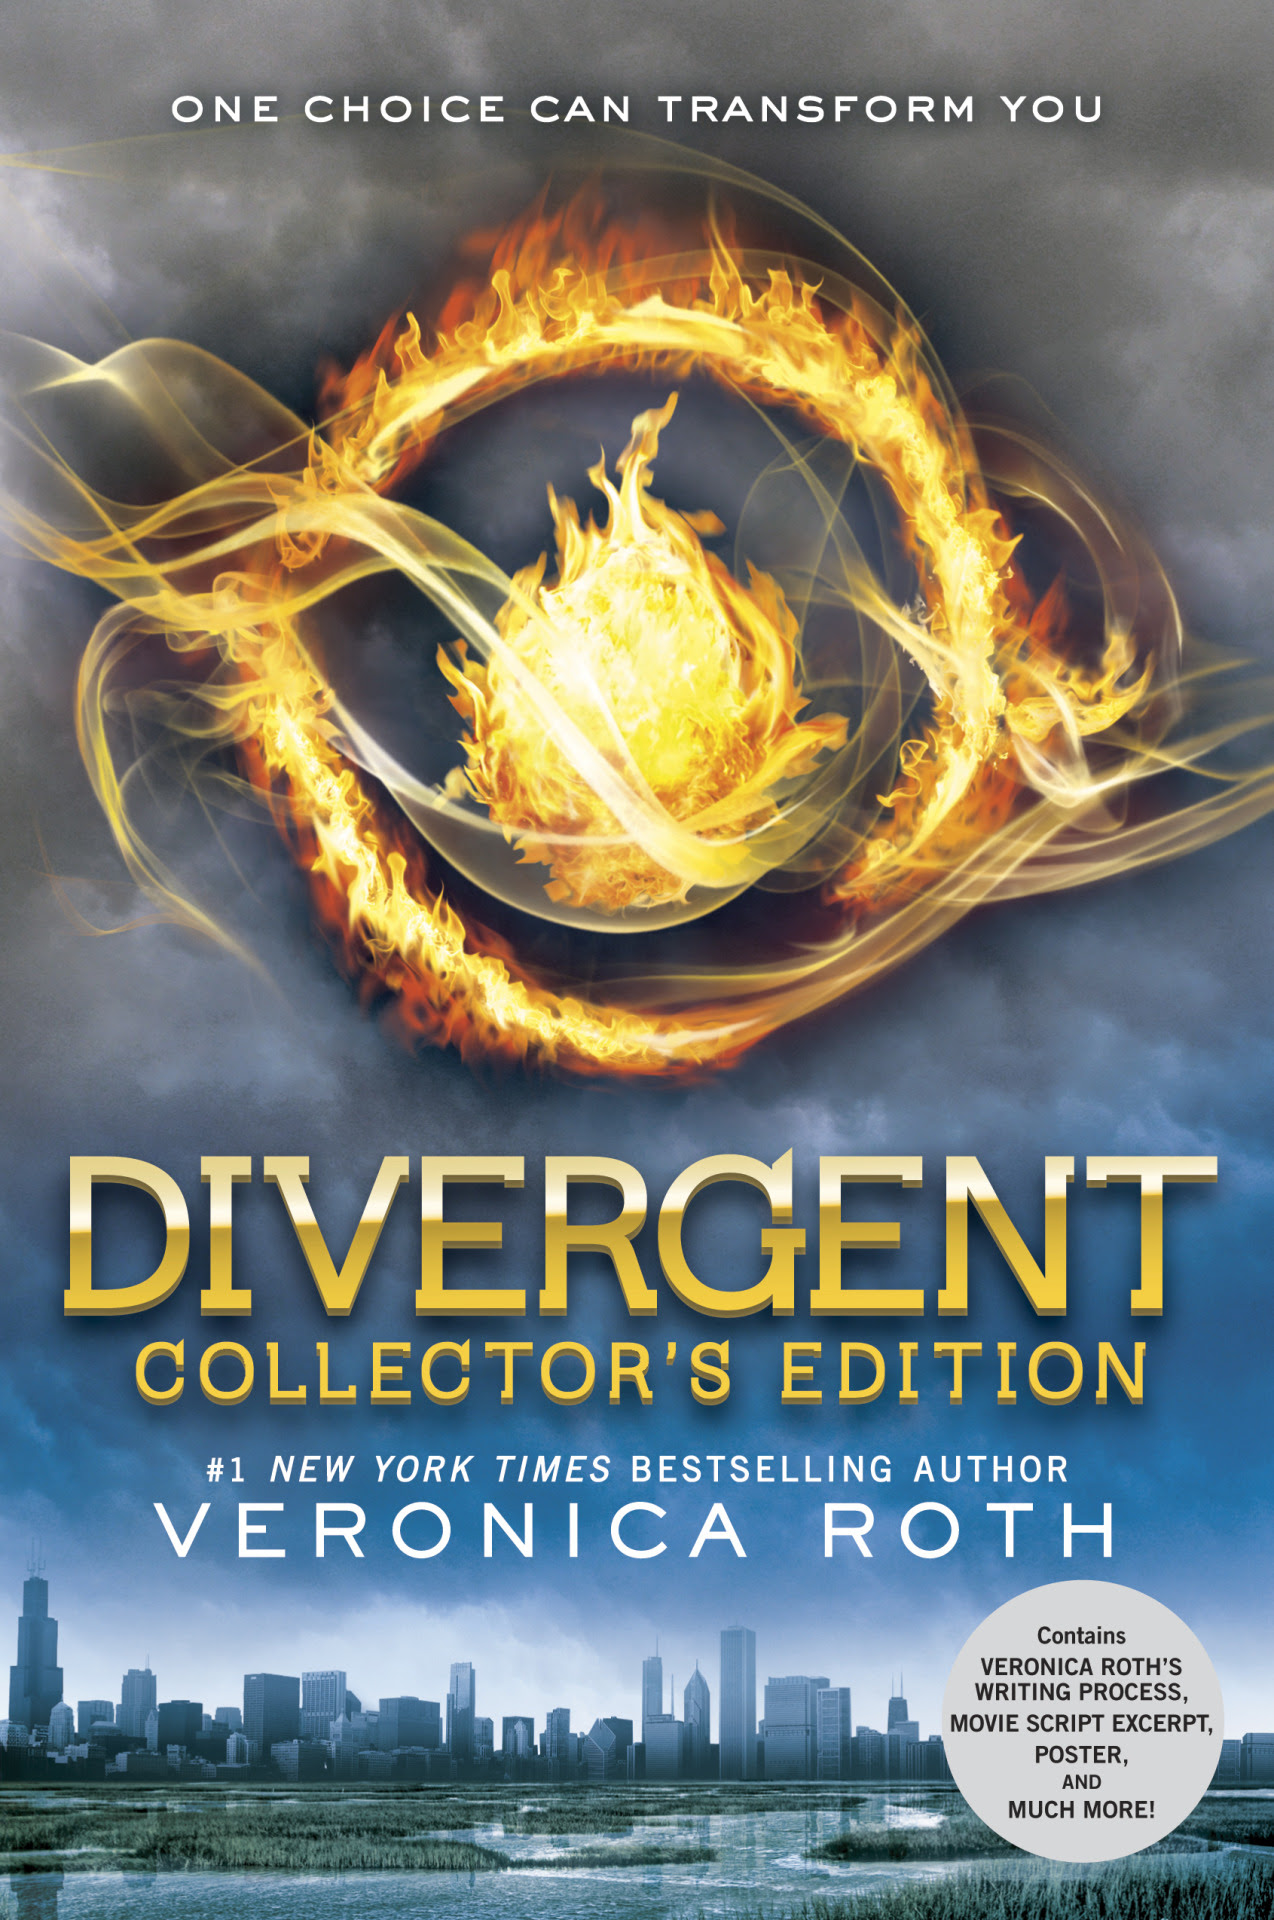 """Initiates! The Divergent Collector's Edition will be available October 21st! And we cannot contain our excitement! About theDivergent Collector's Edition:  The #1New York Times bestseller that started a worldwide phenomenon and inspired a major motion picture is now available in a beautifully designed Collector's Edition. This deluxe package features: 72 pages of bonus content including: Two essays by Veronica Roth, including excerpts from early drafts of Divergent An essay about the psychology behind fear and the """"exposure therapy"""" of Dauntless initiation Artistic renderings of the Choosing Ceremony Bowls An excerpt from the movie script Favorite quotes from Divergent, illustrated by fellow Initiates A map of the Dauntless compound Divergent discussion questions Plus: A four-color fold-out poster A brilliant metallic book jacket A satin ribbon placeholder This edition makes a great gift for established fans who want to expand their Divergent library or who already own the Insurgent Collector's Edition; readers new to the series who want a fuller reading experience; and fans of the feature film."""